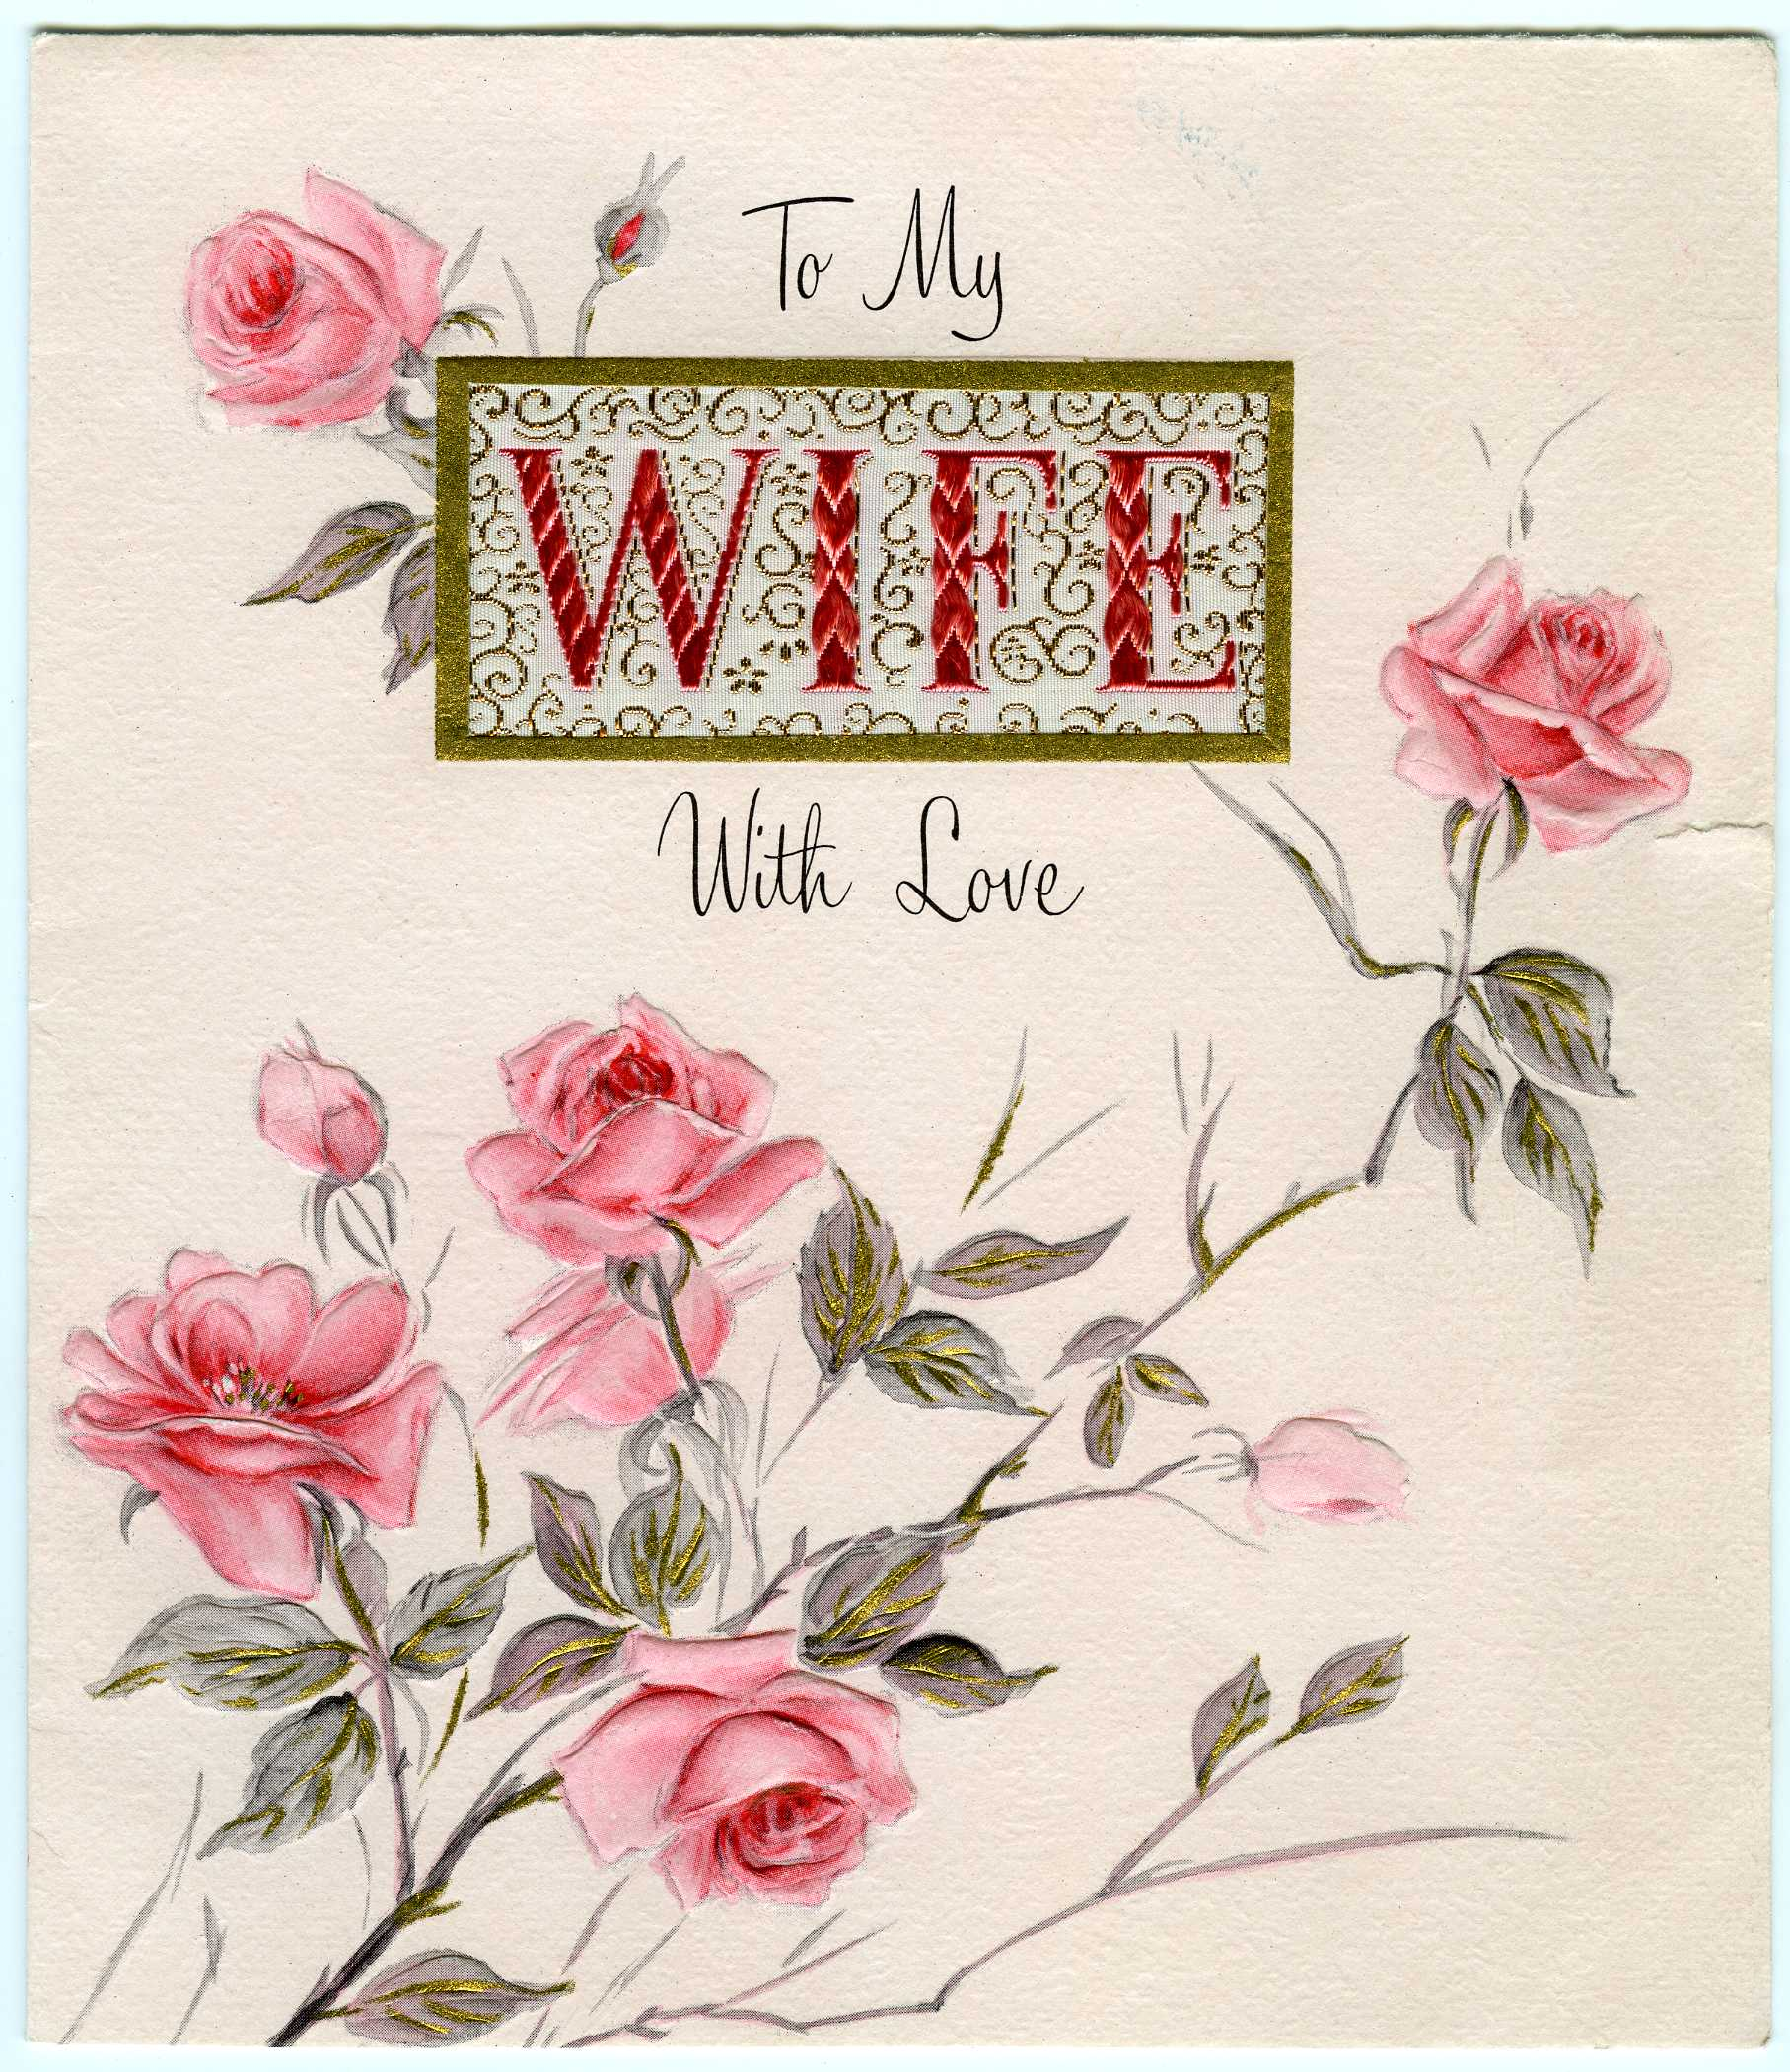 J C Penney Valentine's Day Card to his Wife